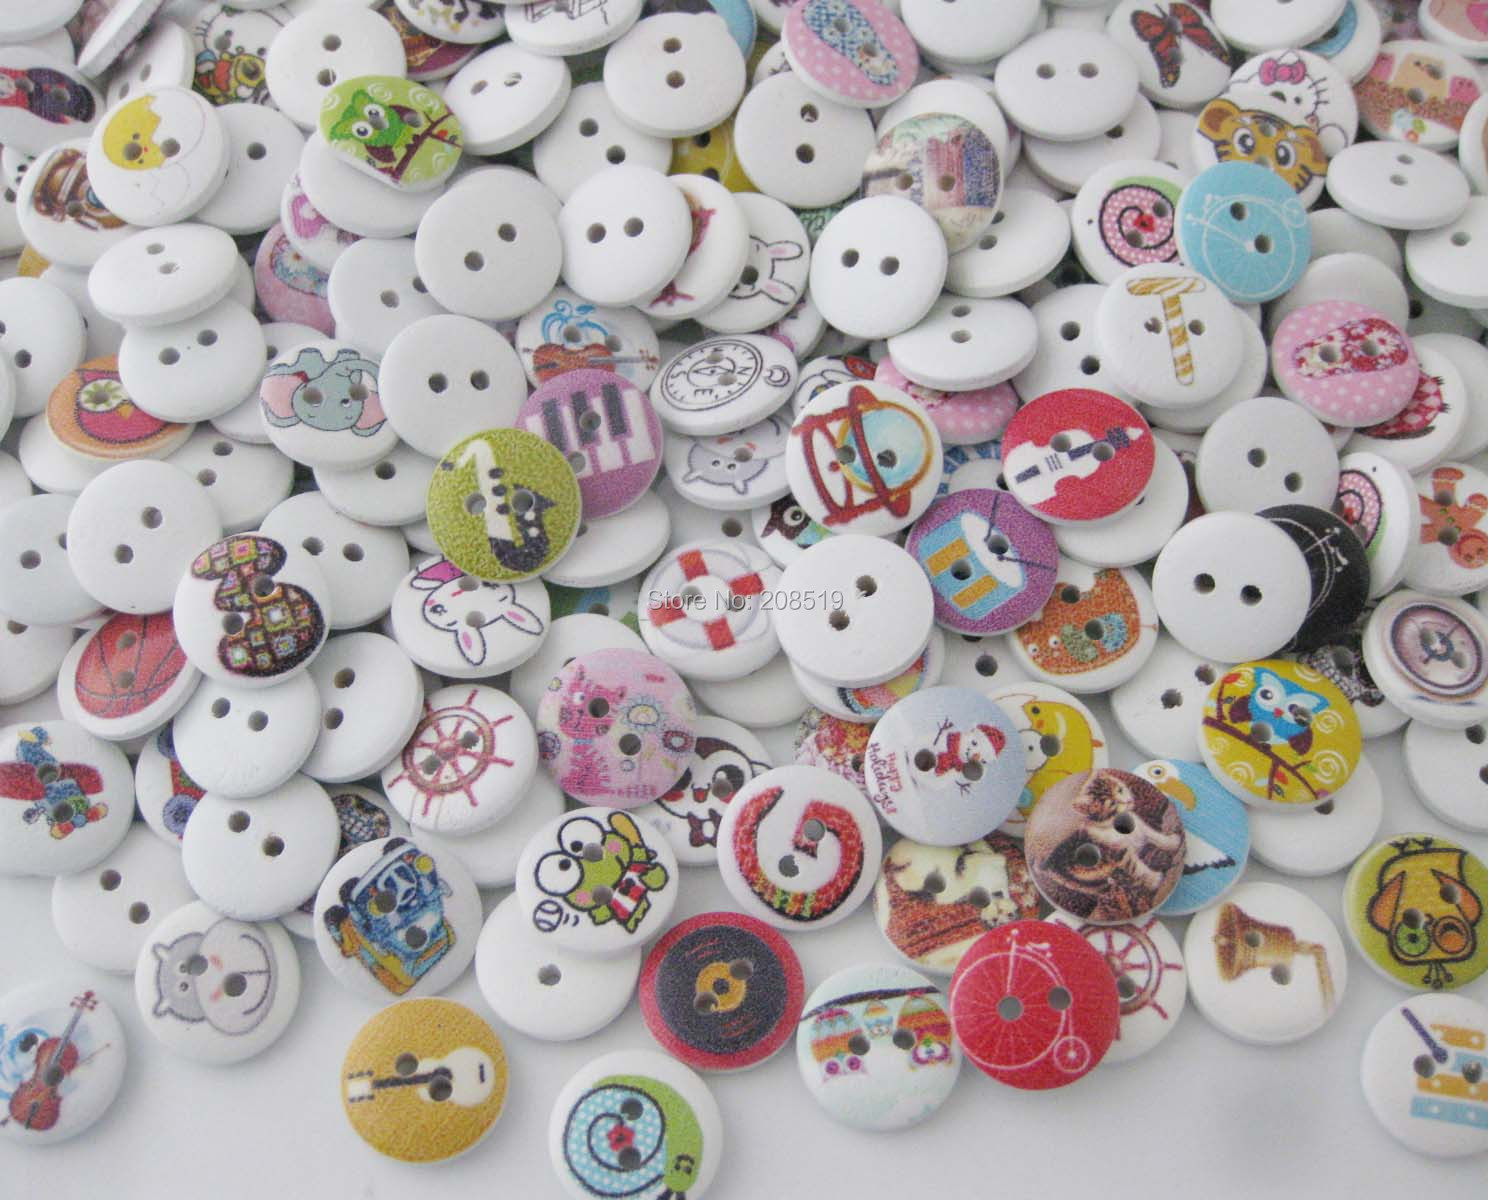 100Pcs Feeding Bottle Wooden Buttons Craft Sewing Scrapbooking Baby Shower